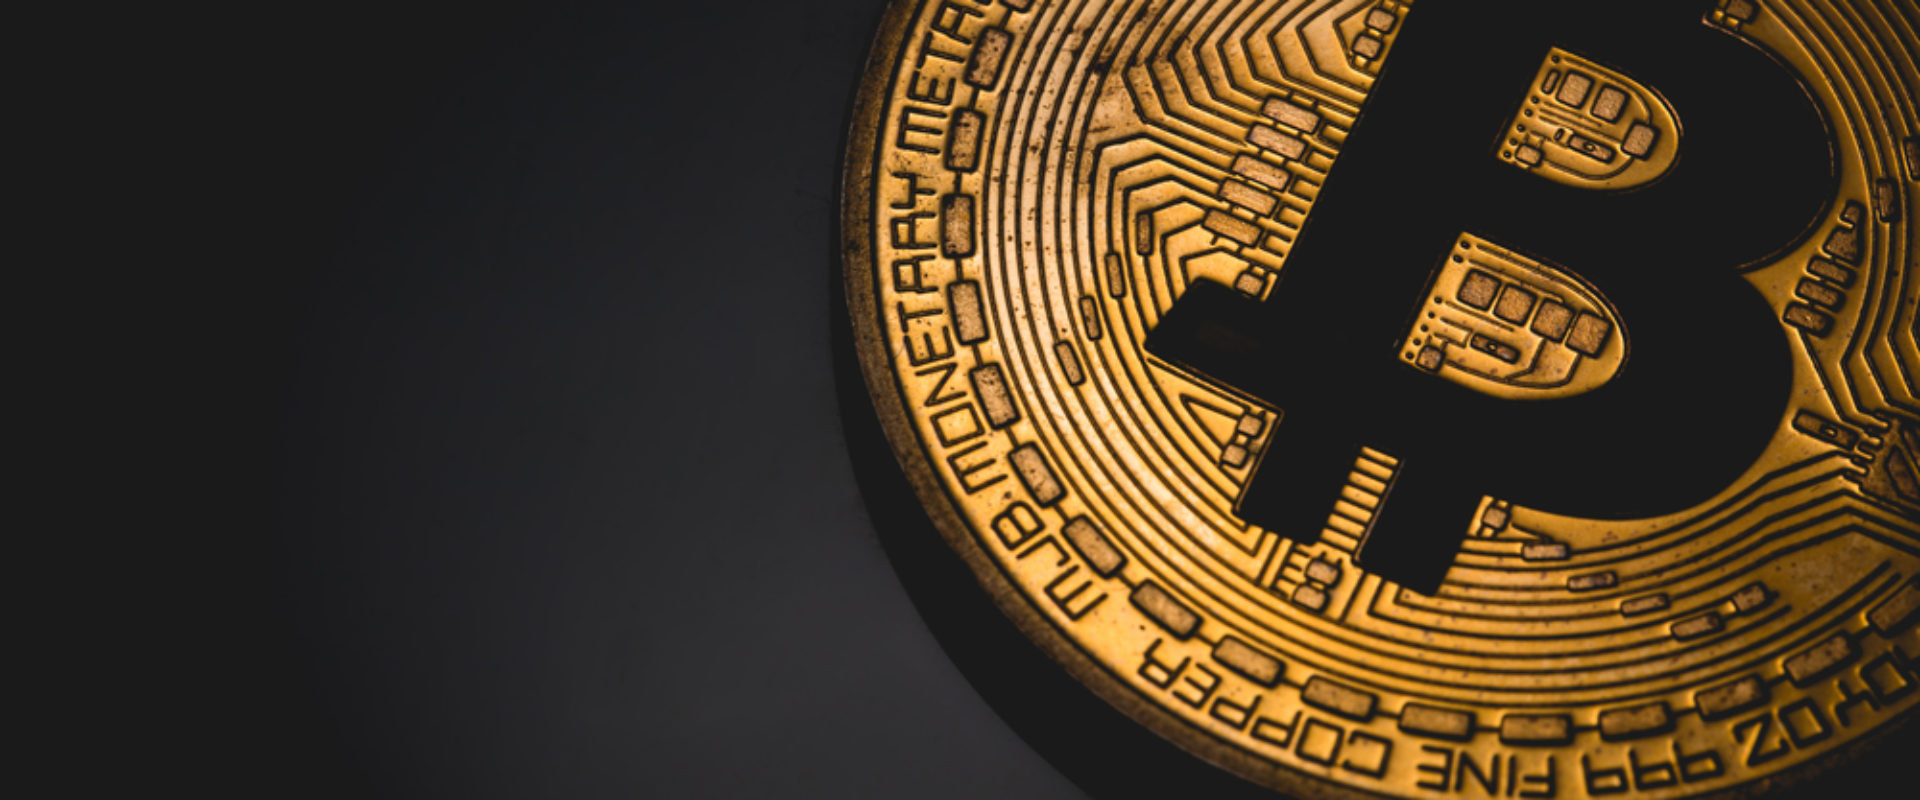 Why the Market Slump Has Not Damaged Confidence In Bitcoin